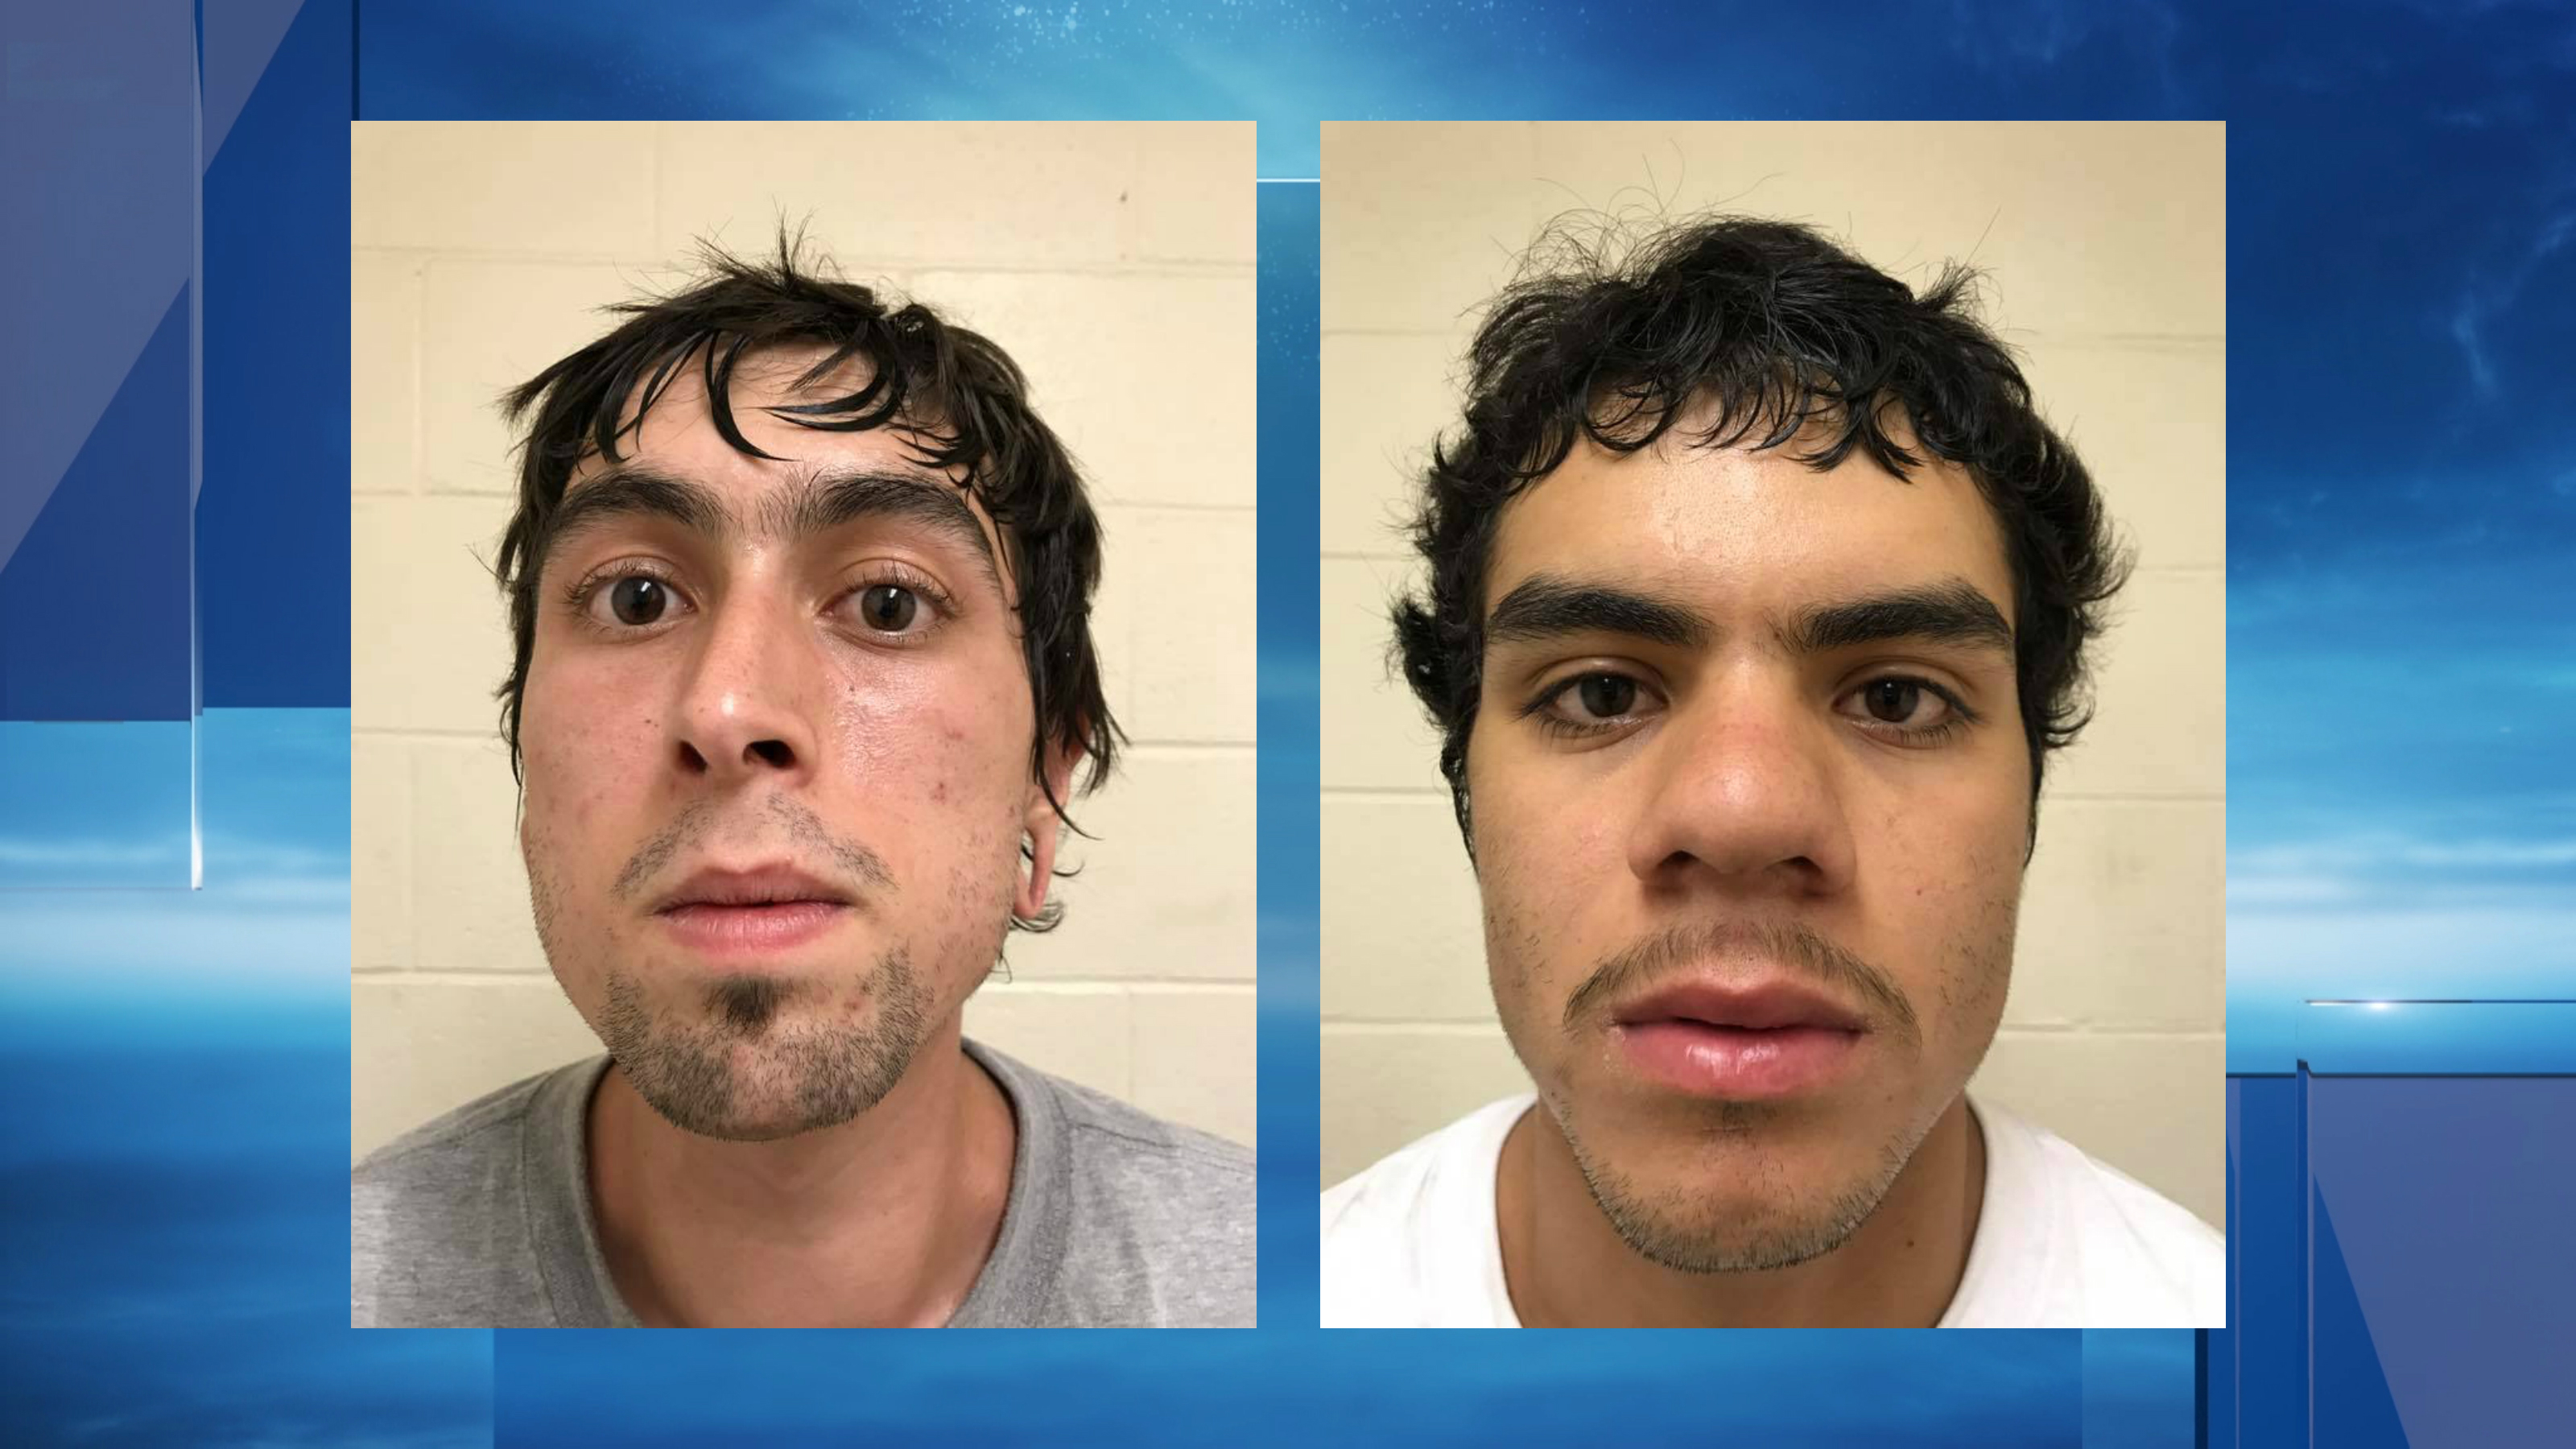 McFarland, Calif., officers arrested two men on suspicion of vandalism and possessing homemade explosives Saturday, July 15, 2017. (Photo from McFarland Police Department)